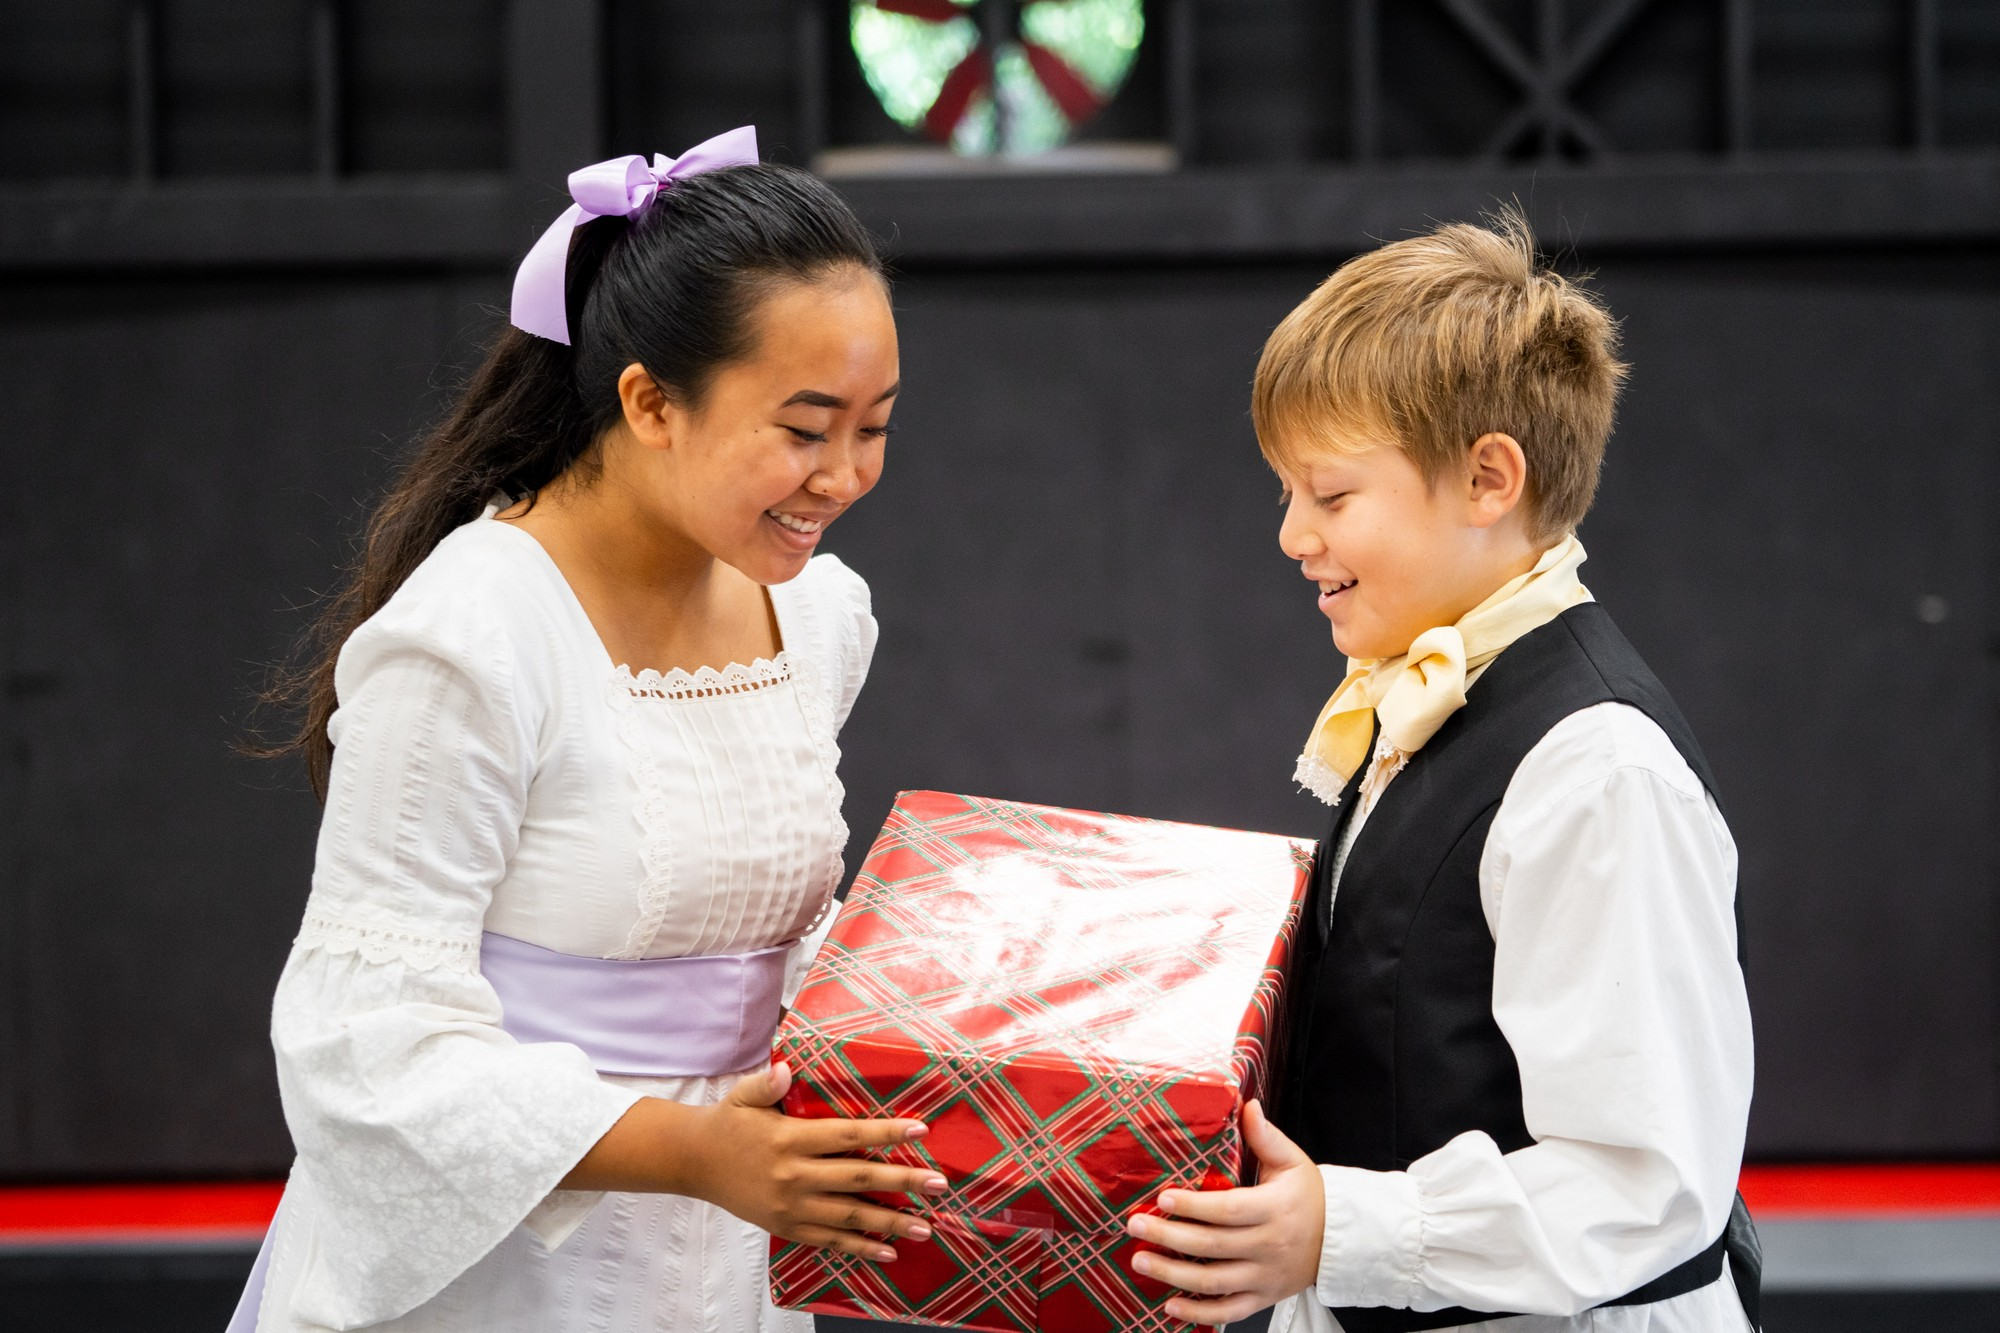 Young girl gives boy a wrapped gift.